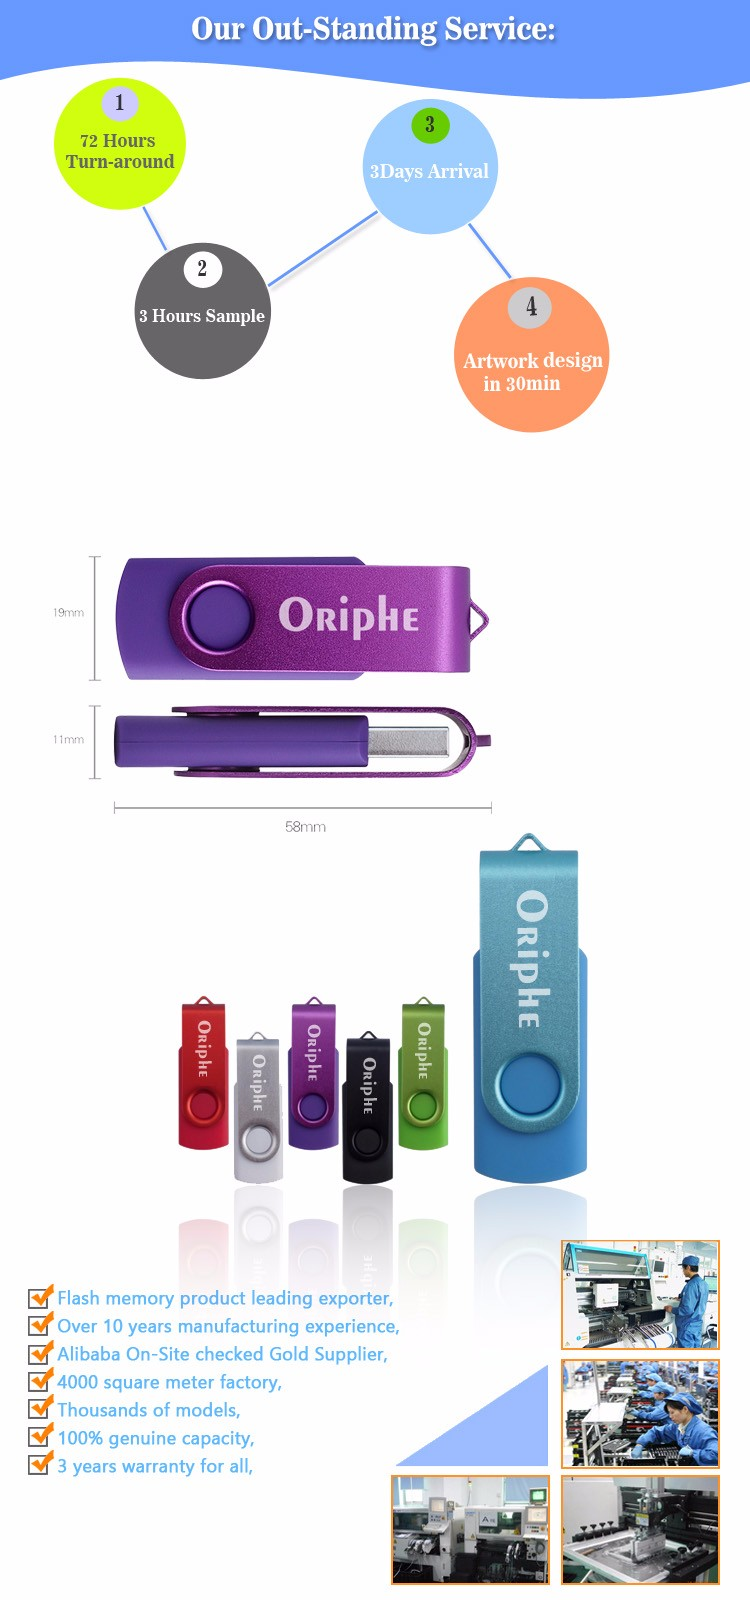 Top seller model-UDN0020 Oriphe-USB Flash Drive-USB2.0/3.0 PROMOTIONAL GIFT